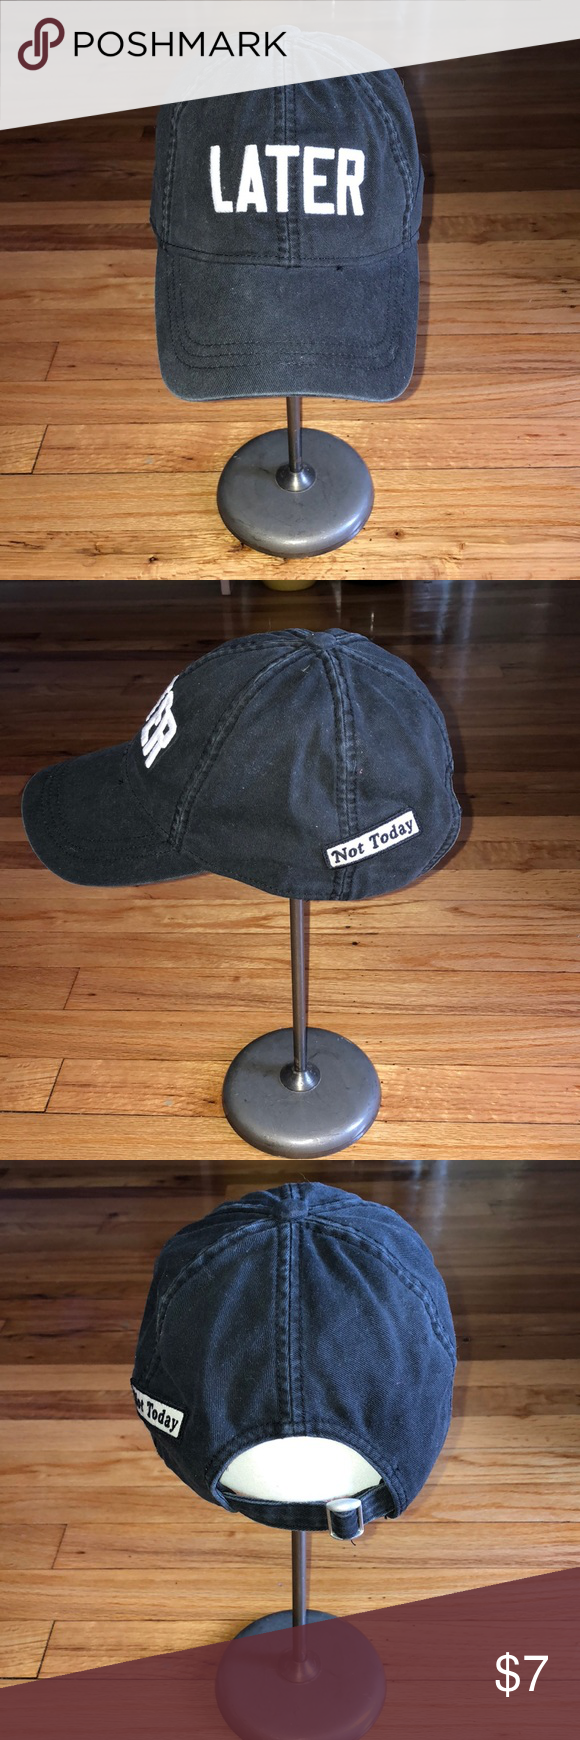 """def830c1c20 American Eagle embroidered baseball hat Washed Black AE baseball cap with """" LATER"""" embroidered on the front and an adjustable back strap American Eagle  ..."""